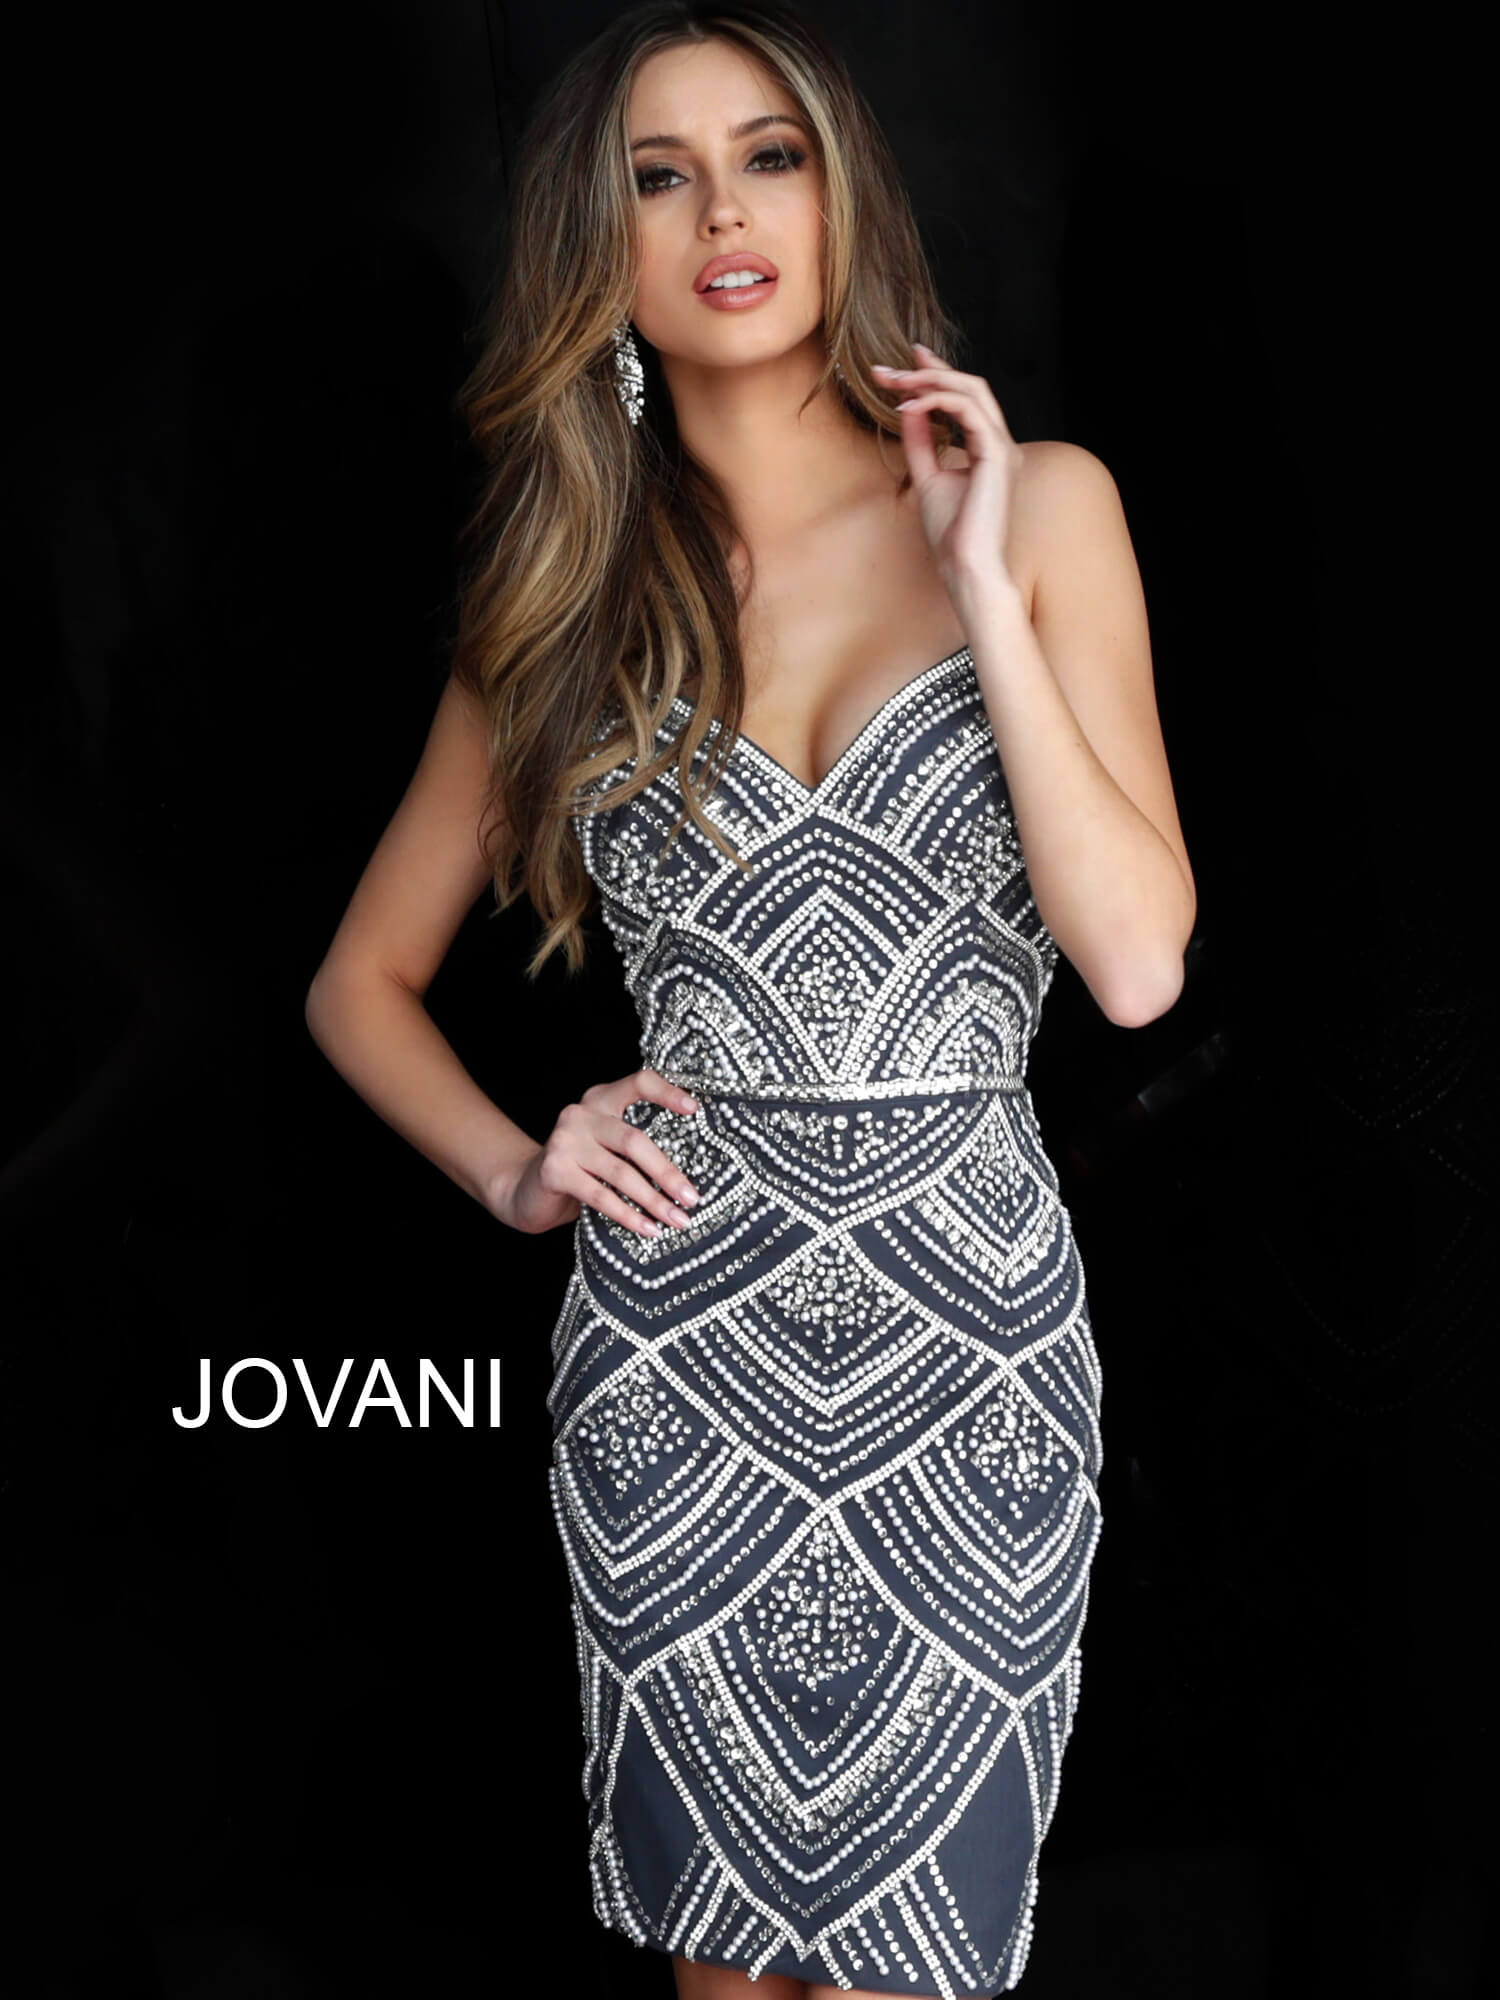 Jovani 64598 Nude Beaded Spaghetti Straps Short Dress